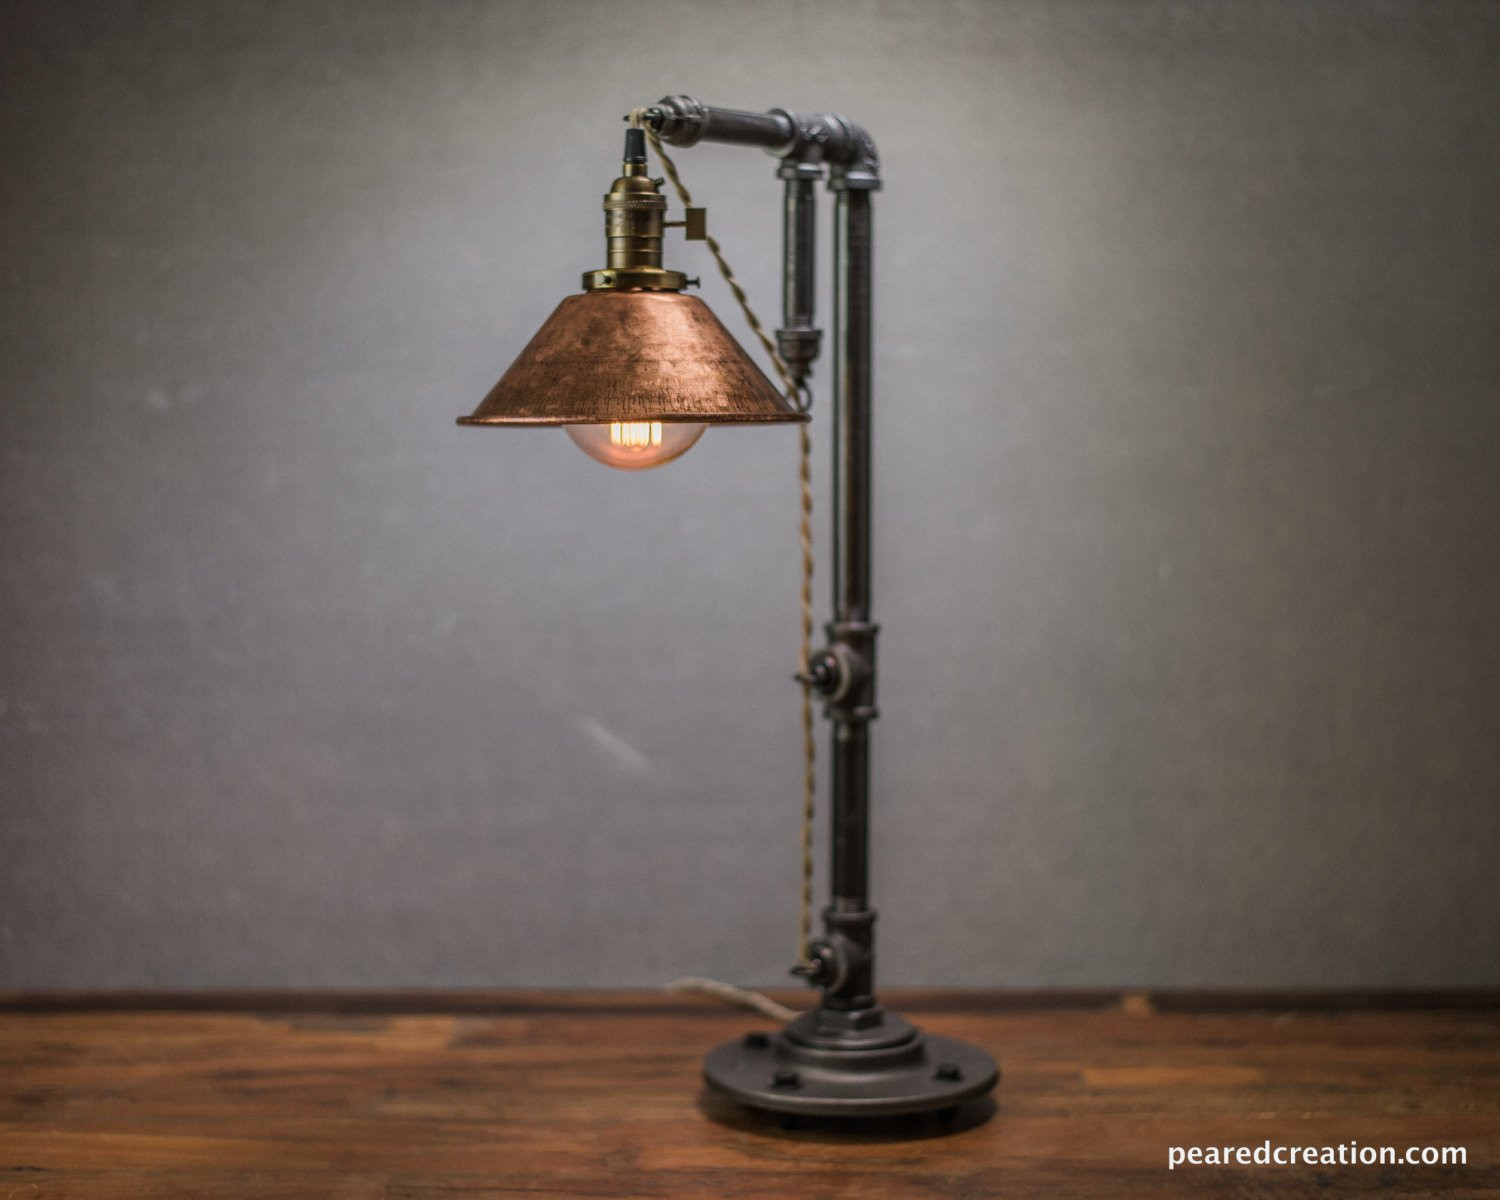 Best ideas about Edison Desk Lamp . Save or Pin Industrial Table Lamp Edison Bulb Lamp Table Lamp Now.